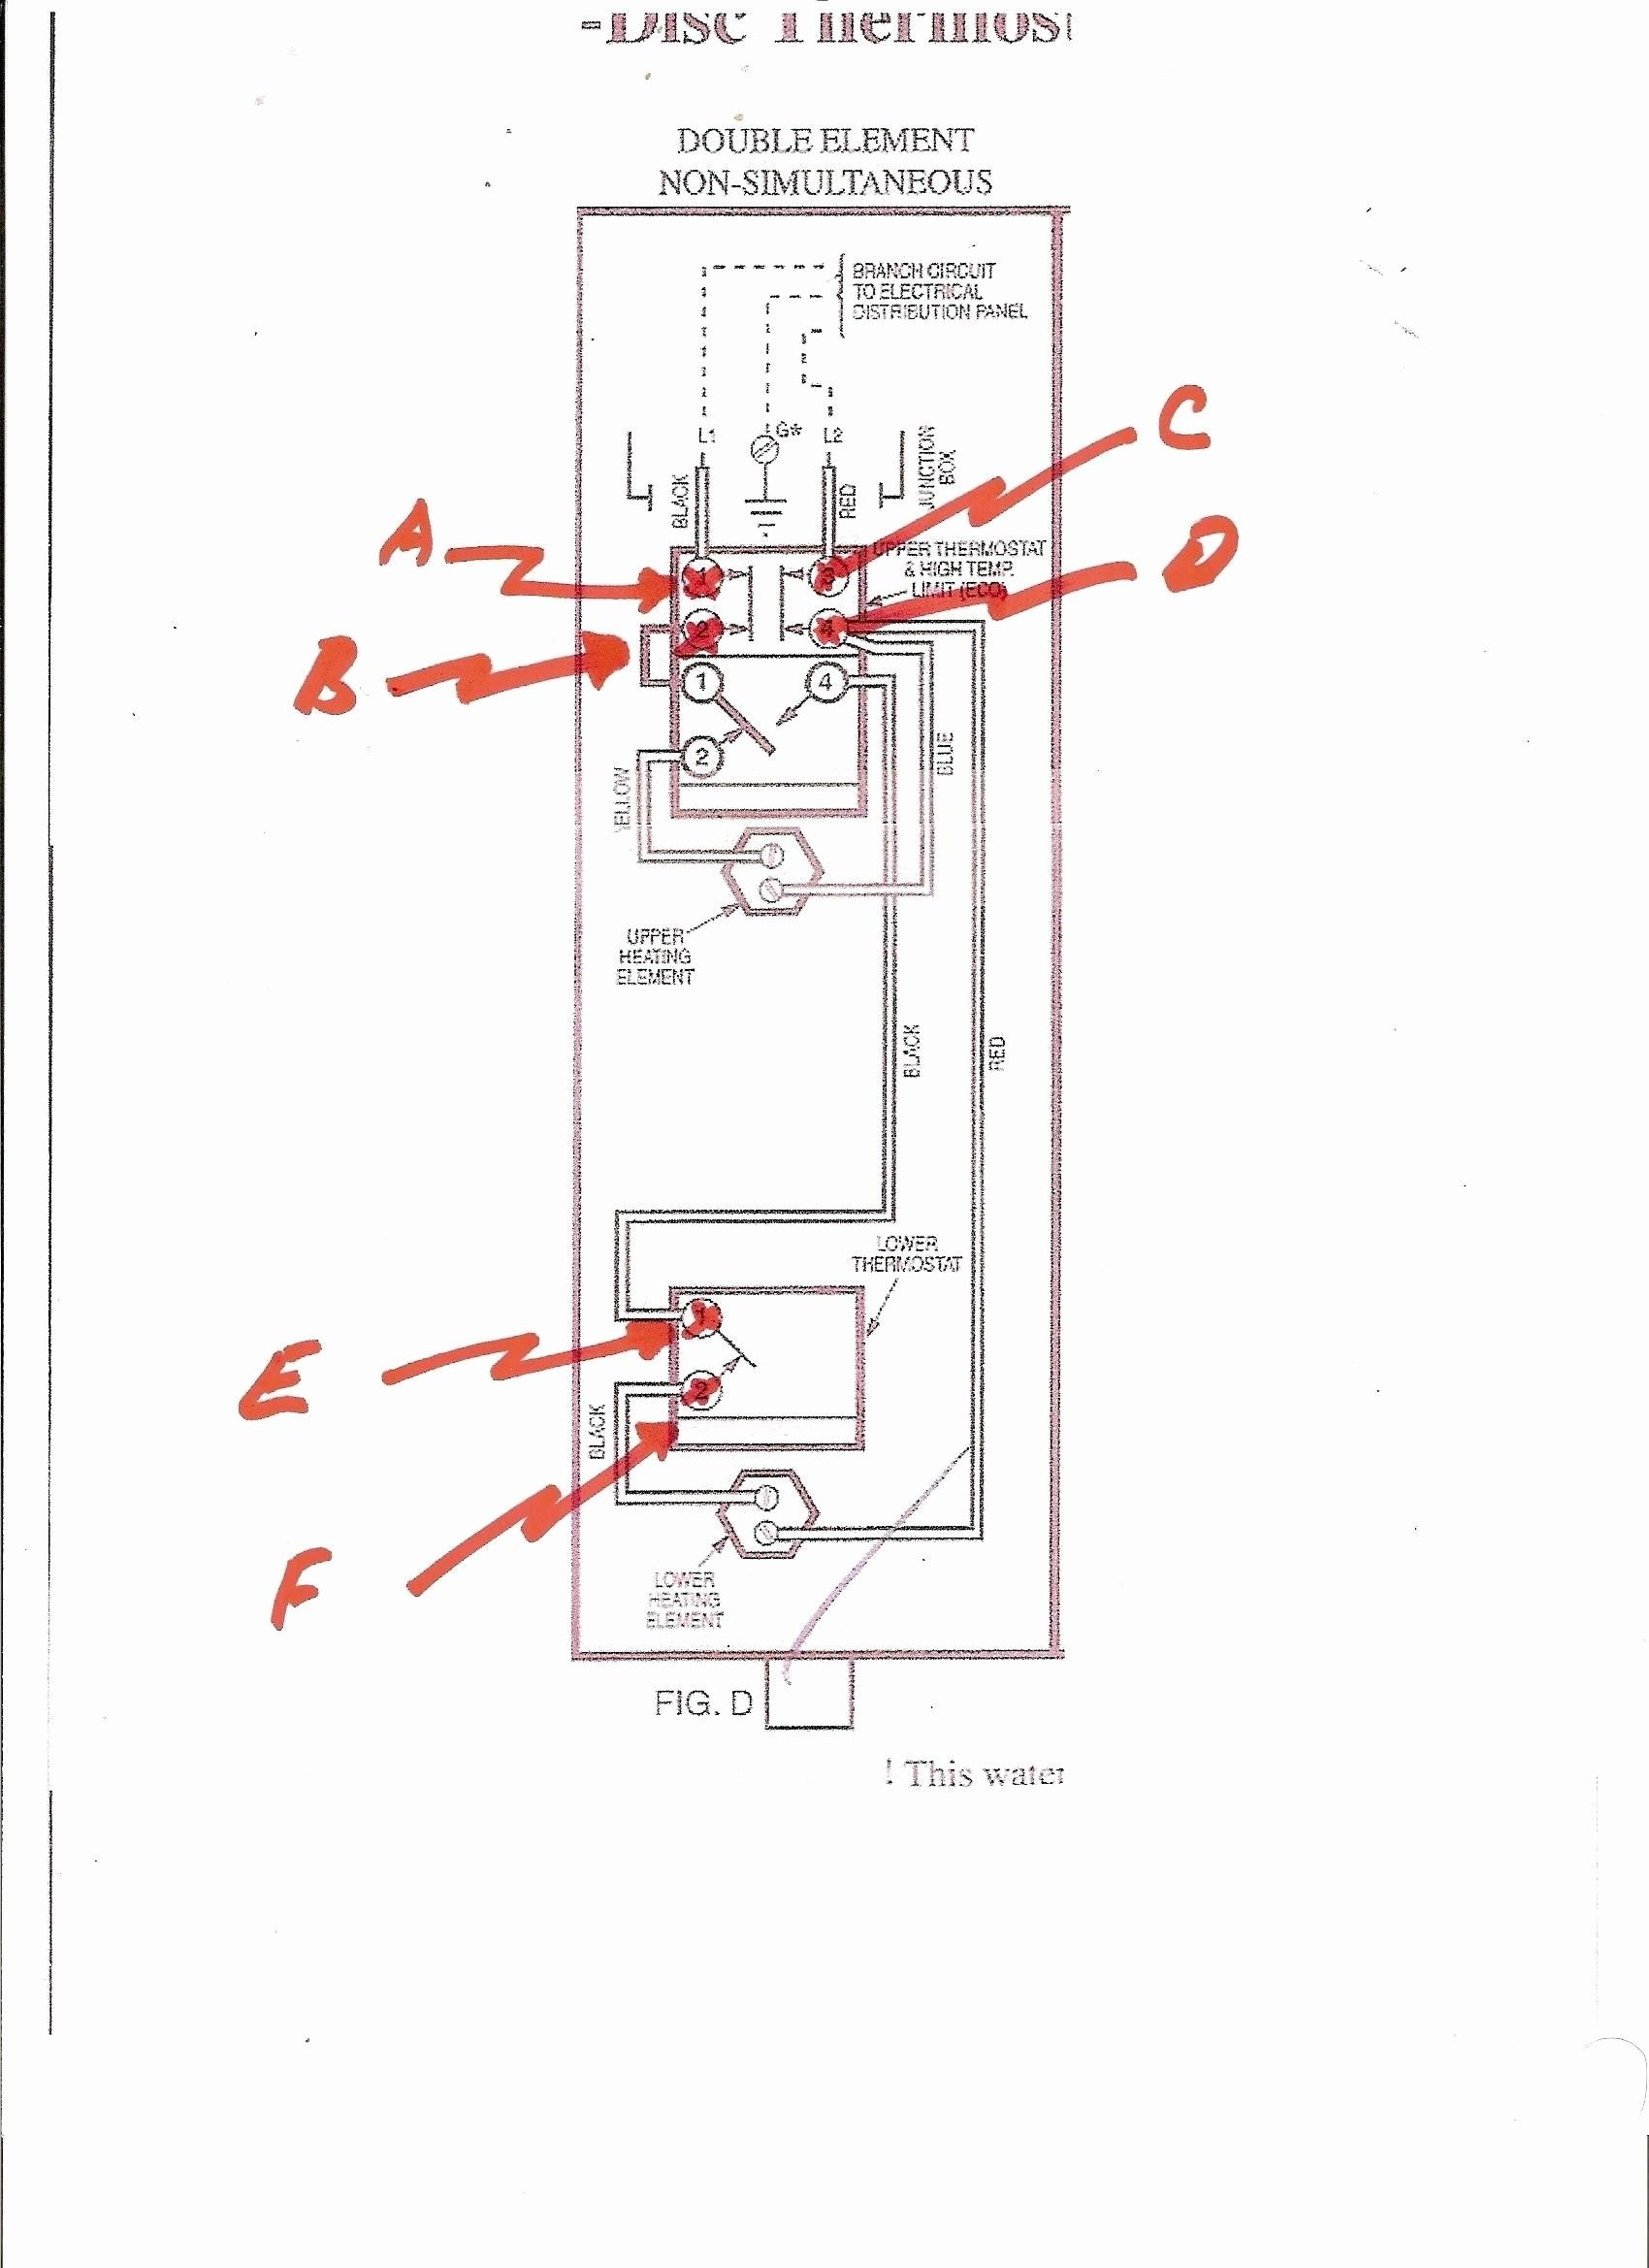 New Wiring Diagram Electric Water Heater Diagram Diagramsample Diagramtemplate Wiringdiagram Diagramch Electric Water Heater Water Heater Baseboard Heater